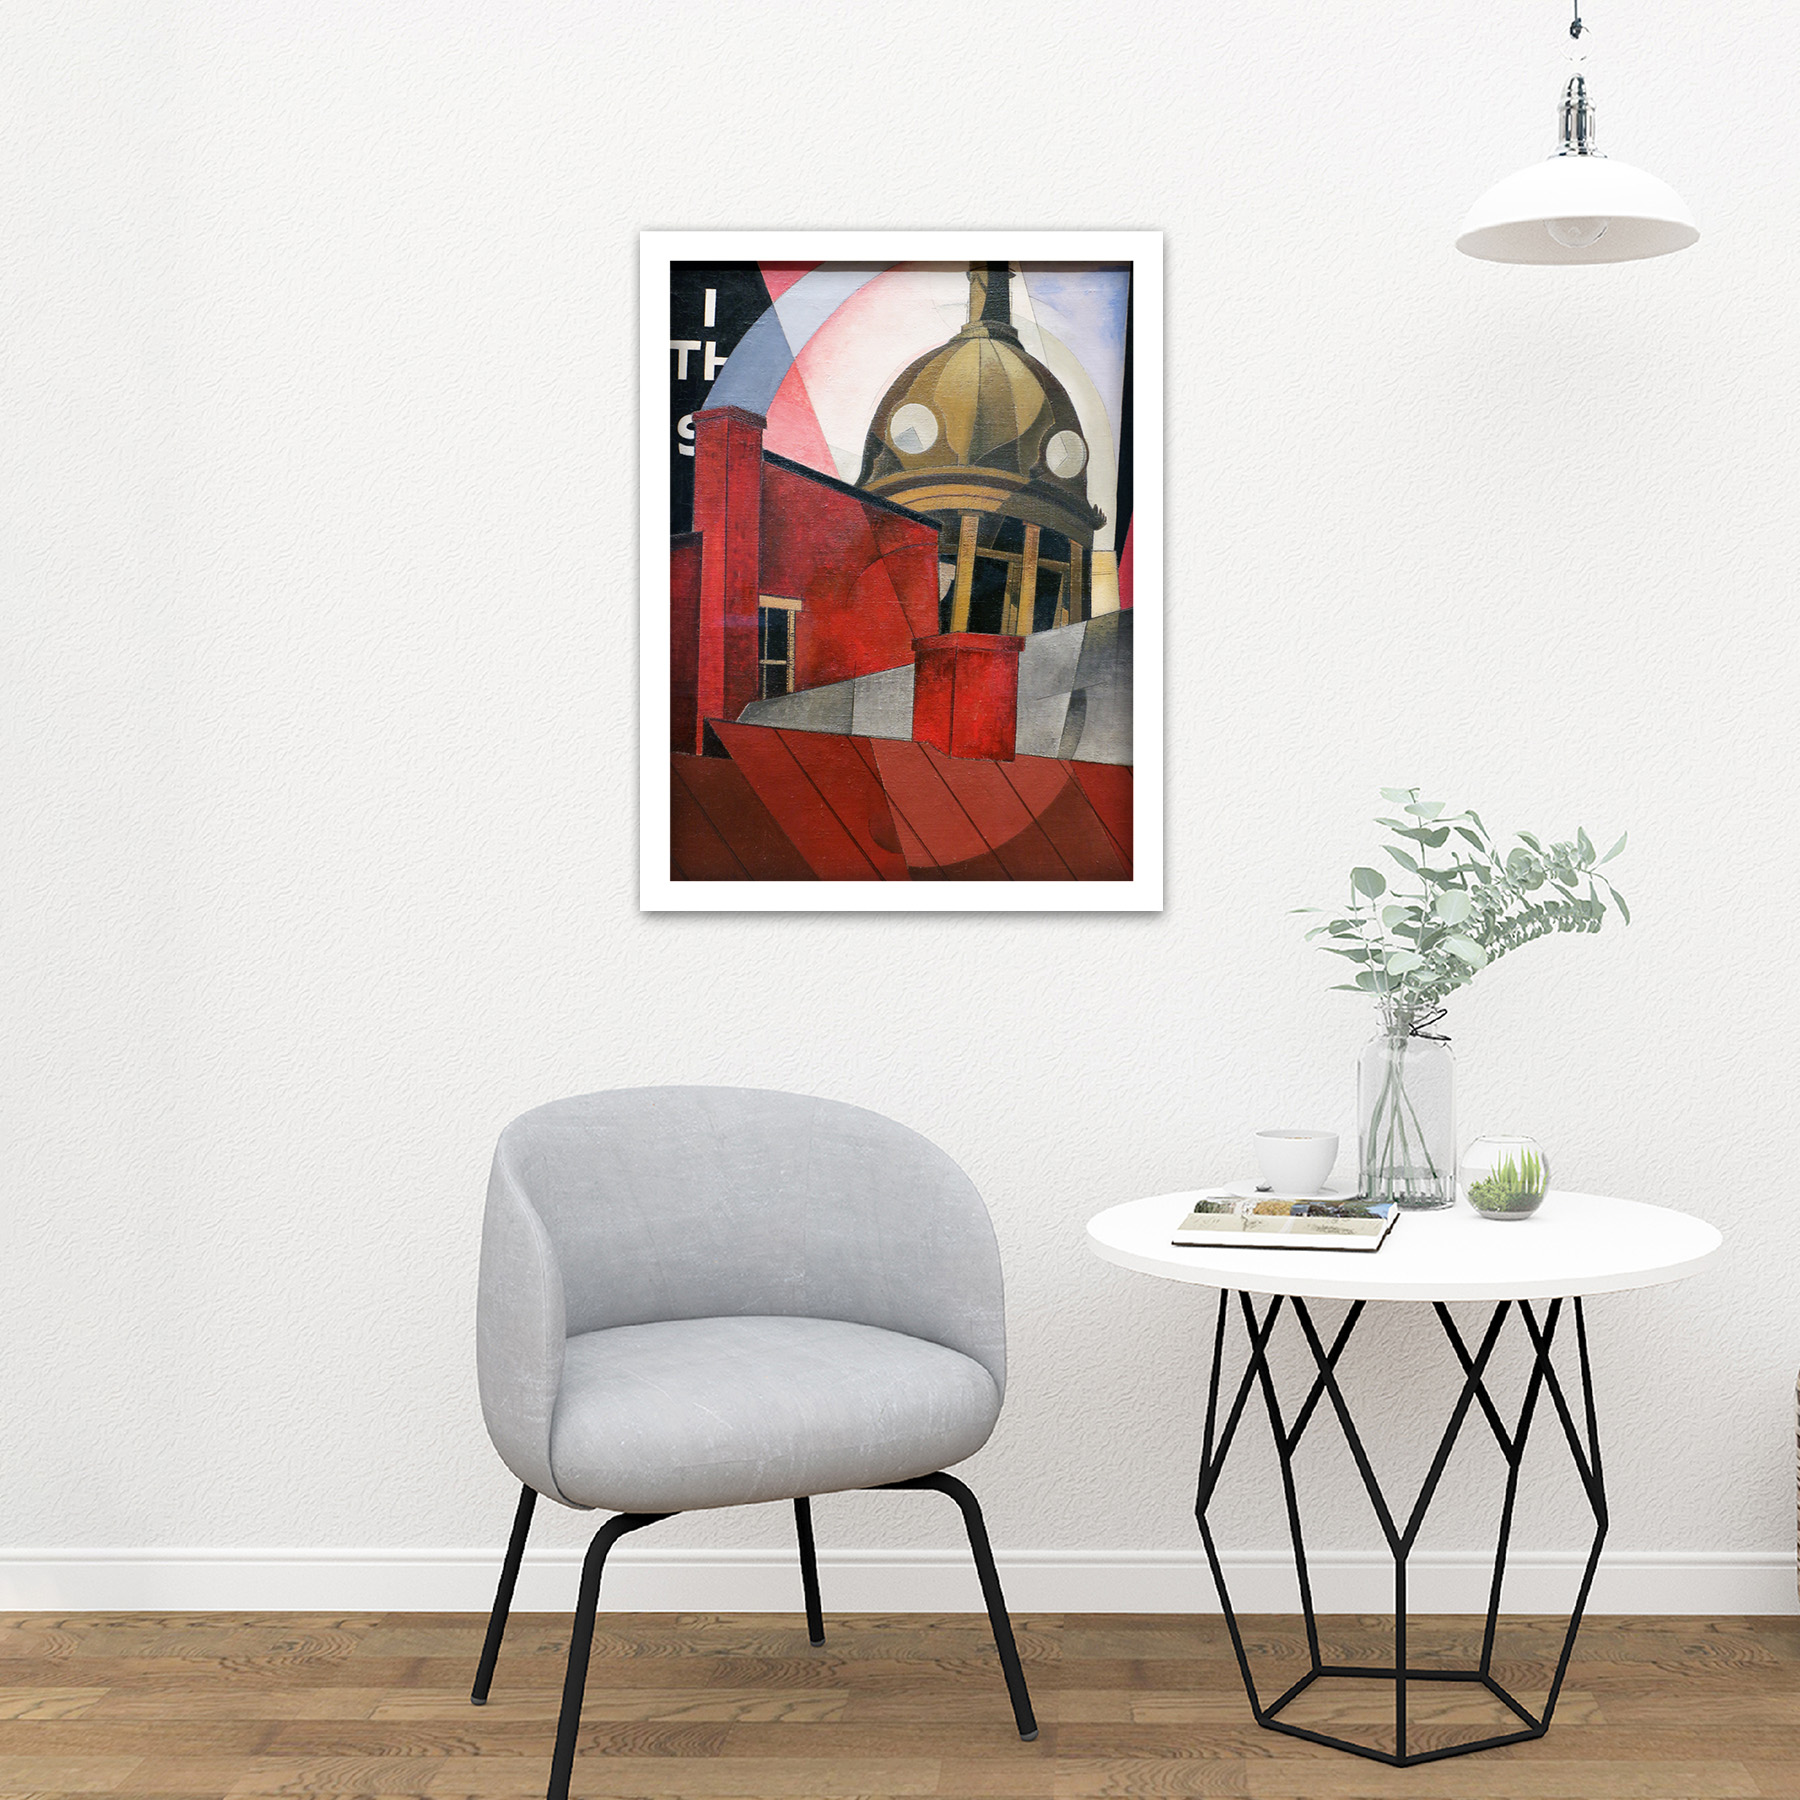 Demuth-Welcome-City-Red-Tower-Painting-Large-Framed-Art-Print thumbnail 23